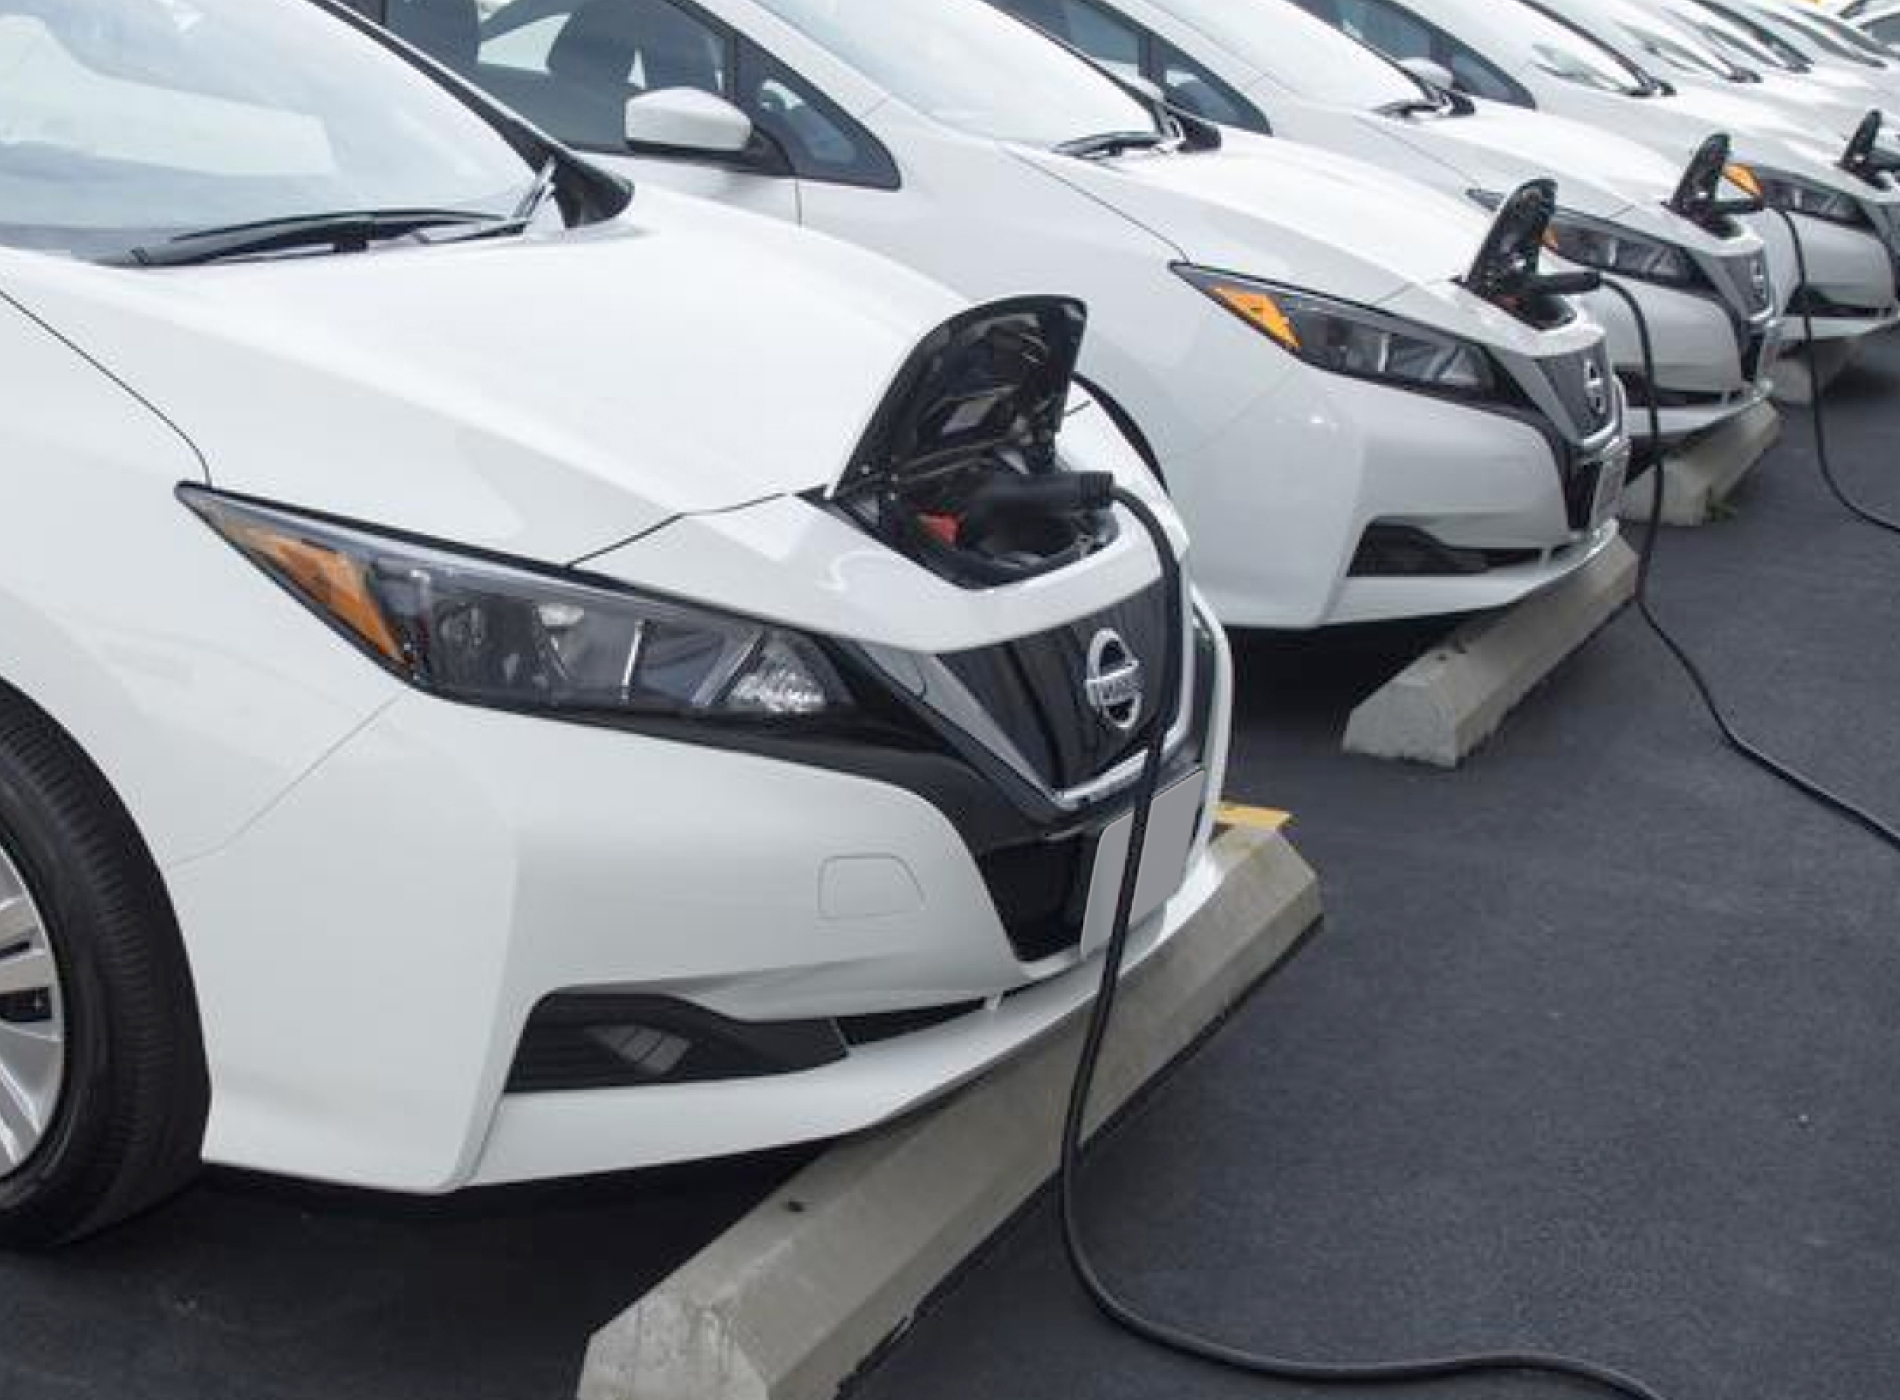 Fleet of white electric vehicules